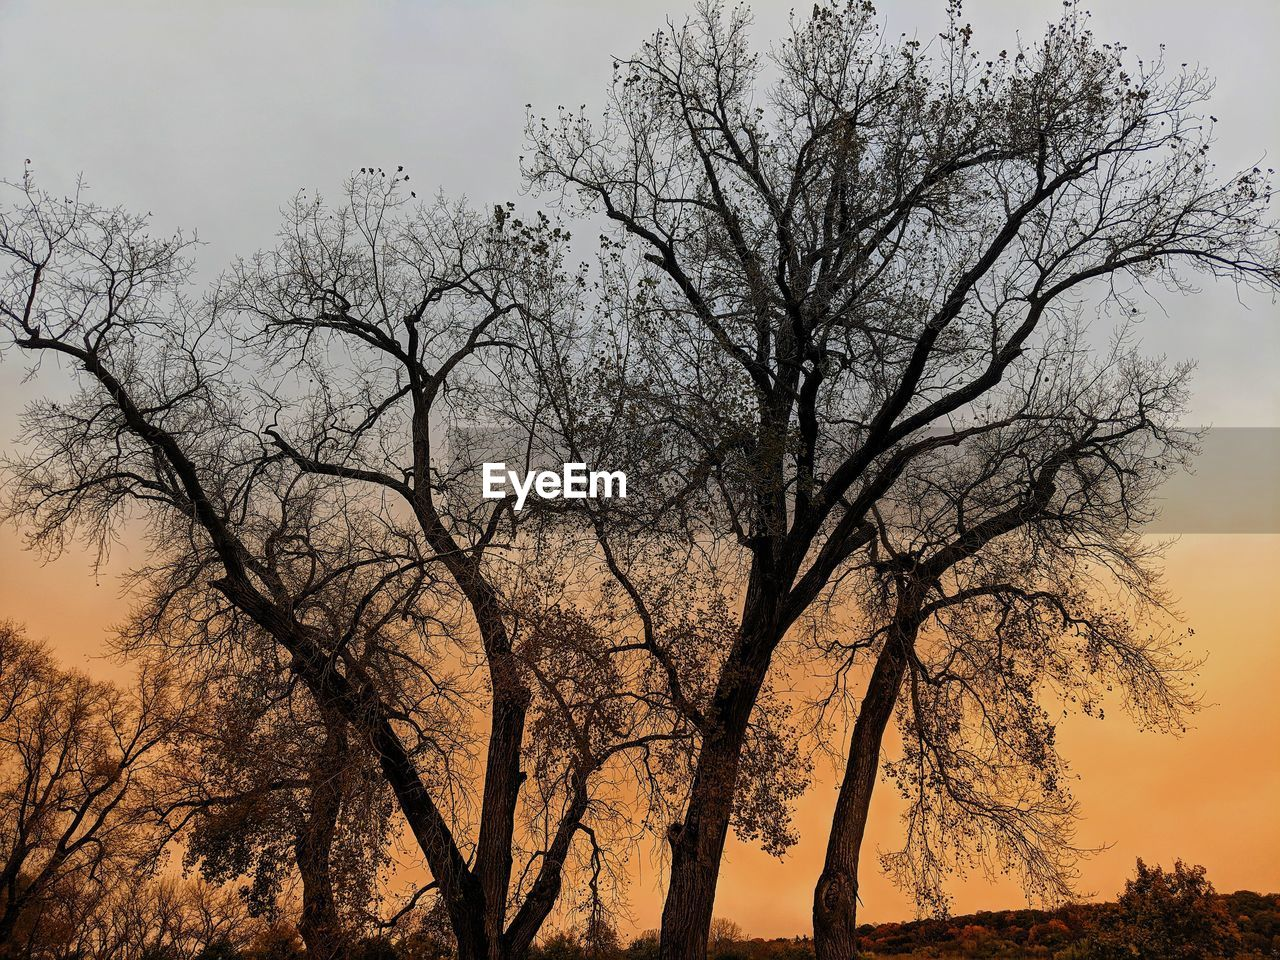 tree, plant, sky, silhouette, bare tree, branch, no people, beauty in nature, nature, tranquility, low angle view, scenics - nature, sunset, outdoors, tranquil scene, growth, non-urban scene, tree trunk, trunk, clear sky